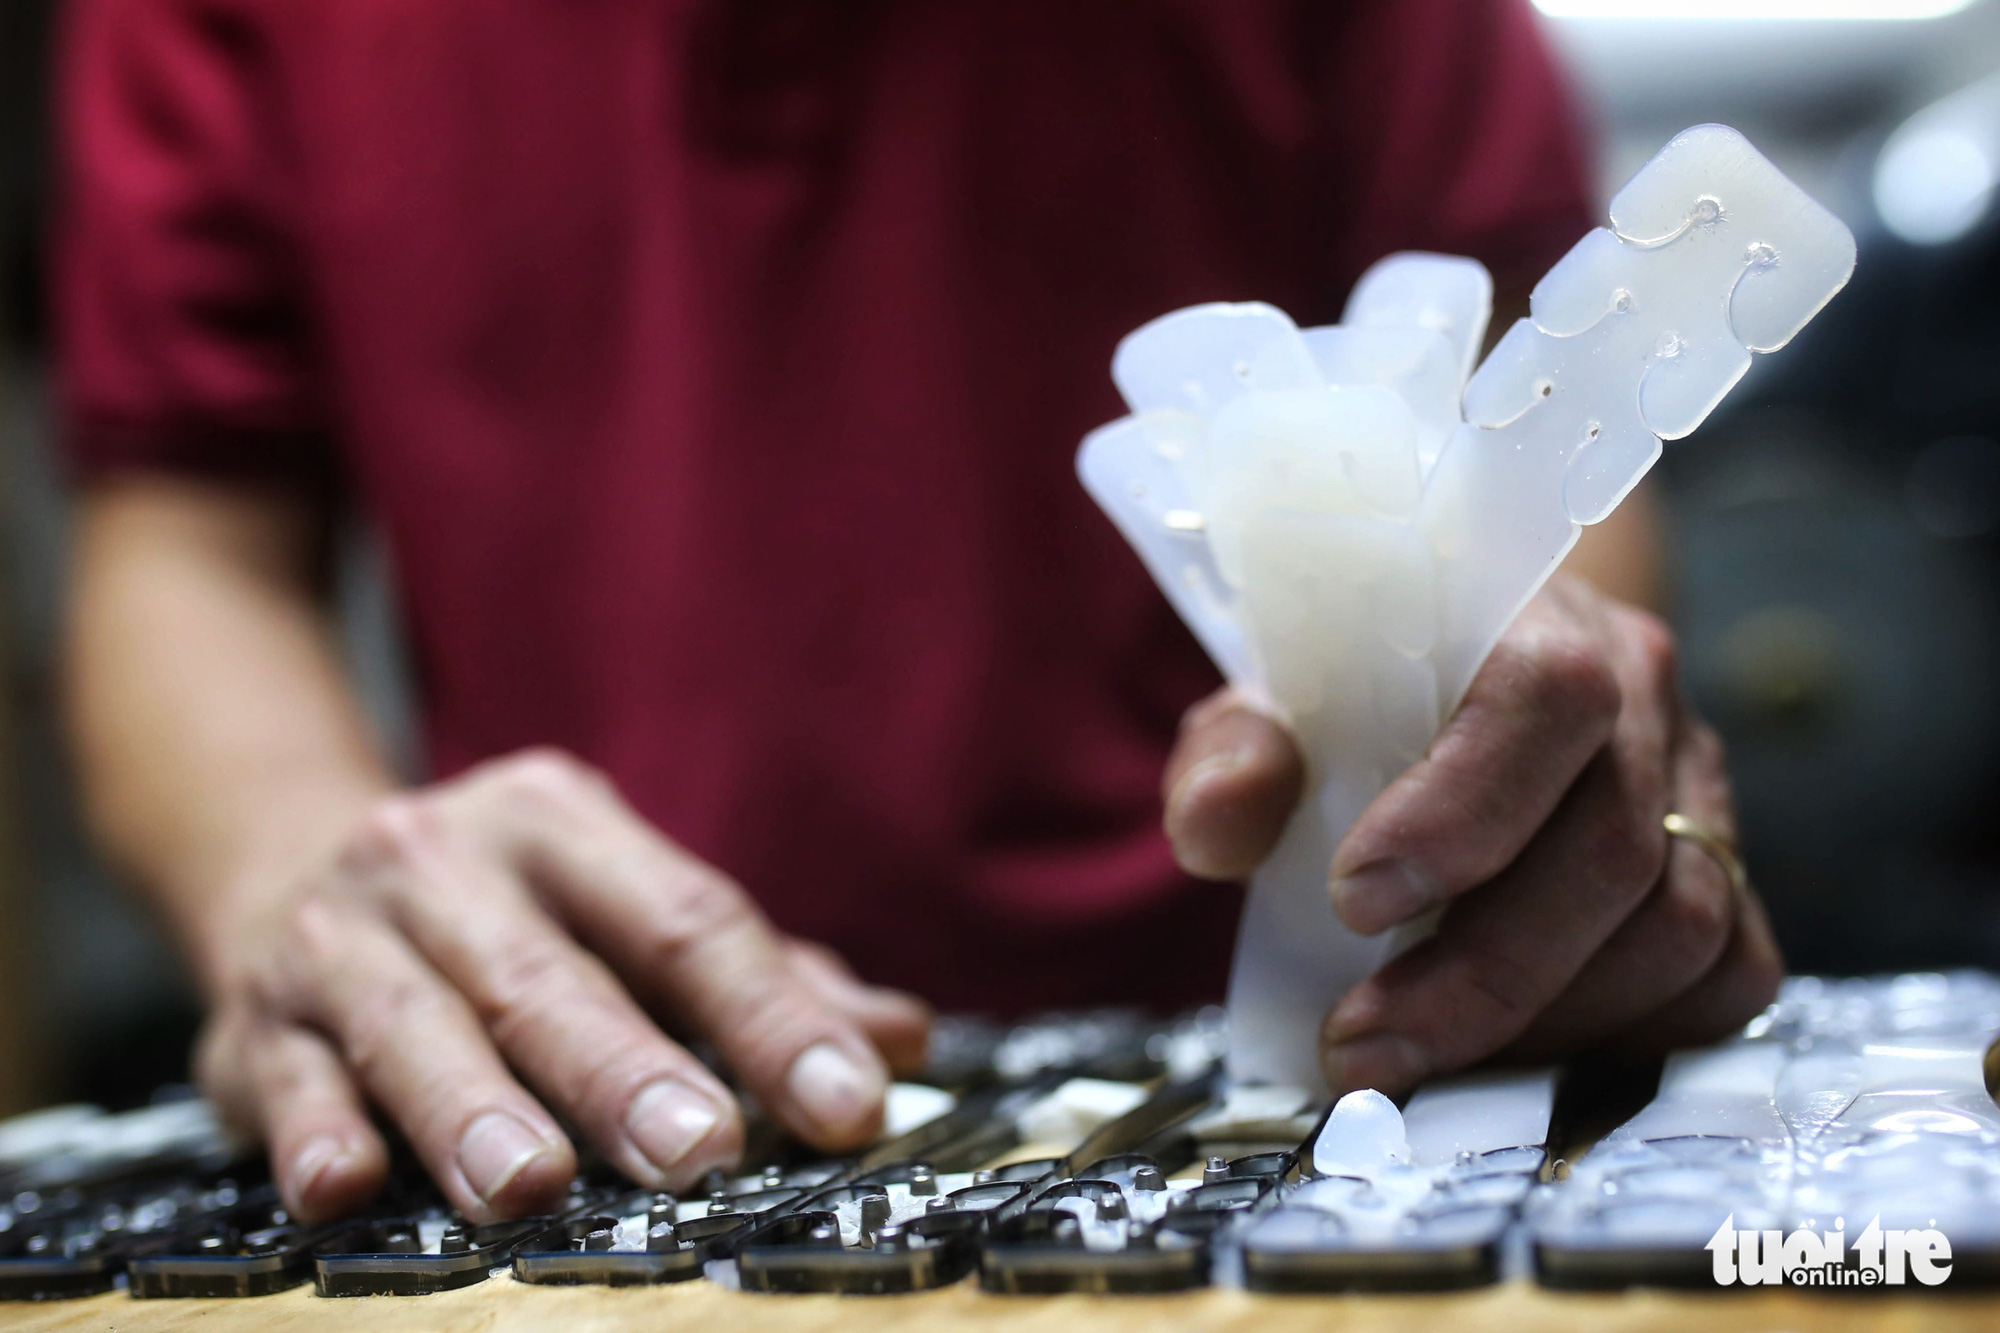 A worker removes ear guards from the mould at a facility in Hanoi, Vietnam. Photo: Mai Thuong / Tuoi Tre